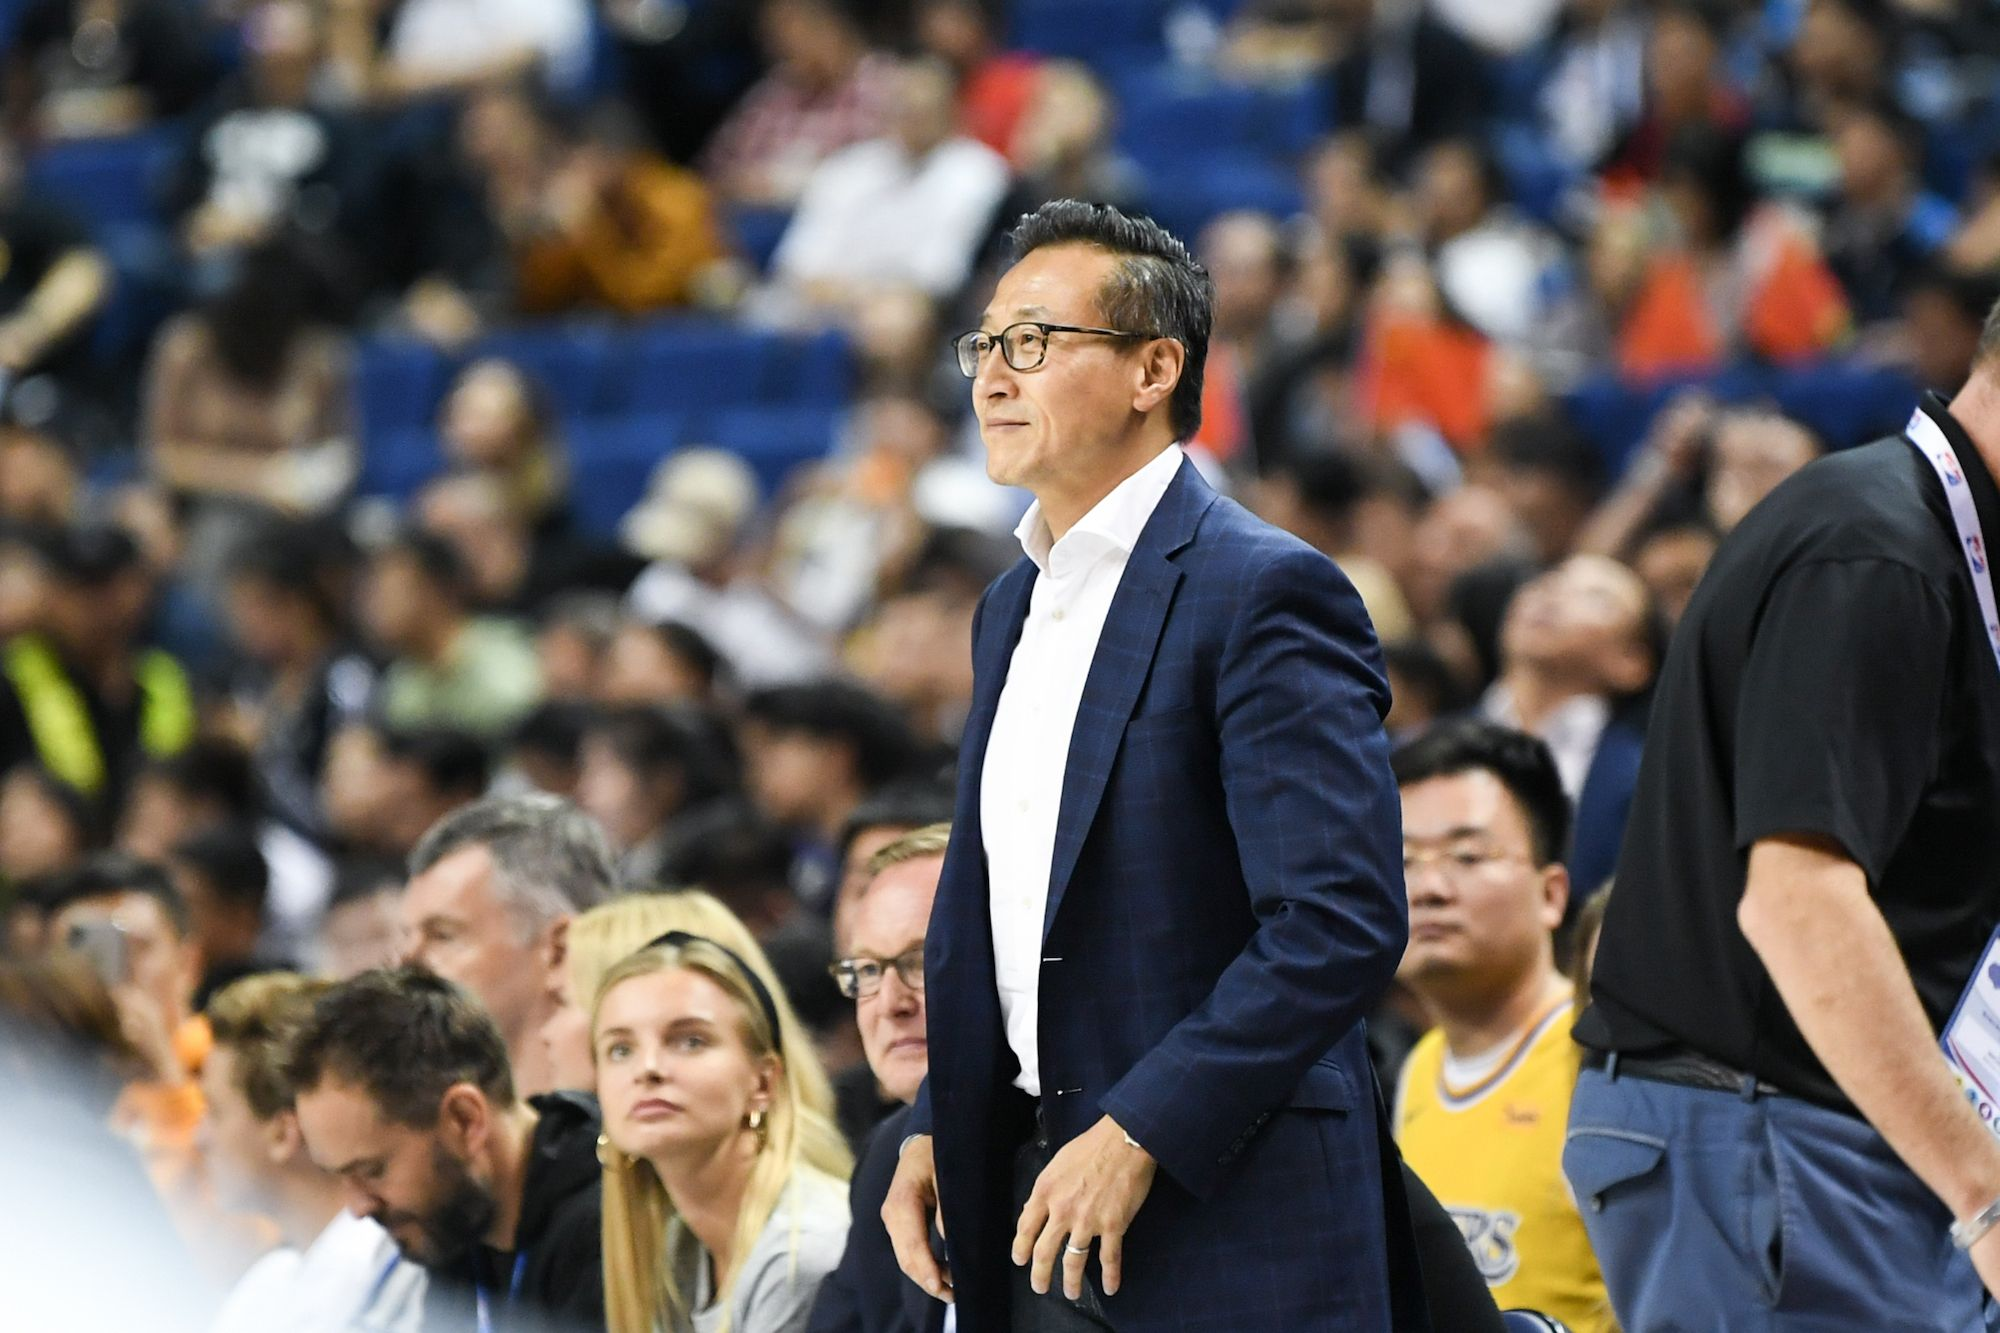 Joseph Tsai, The Billionaire Co-Founder Of Alibaba, On His New Role As A Sports Investor